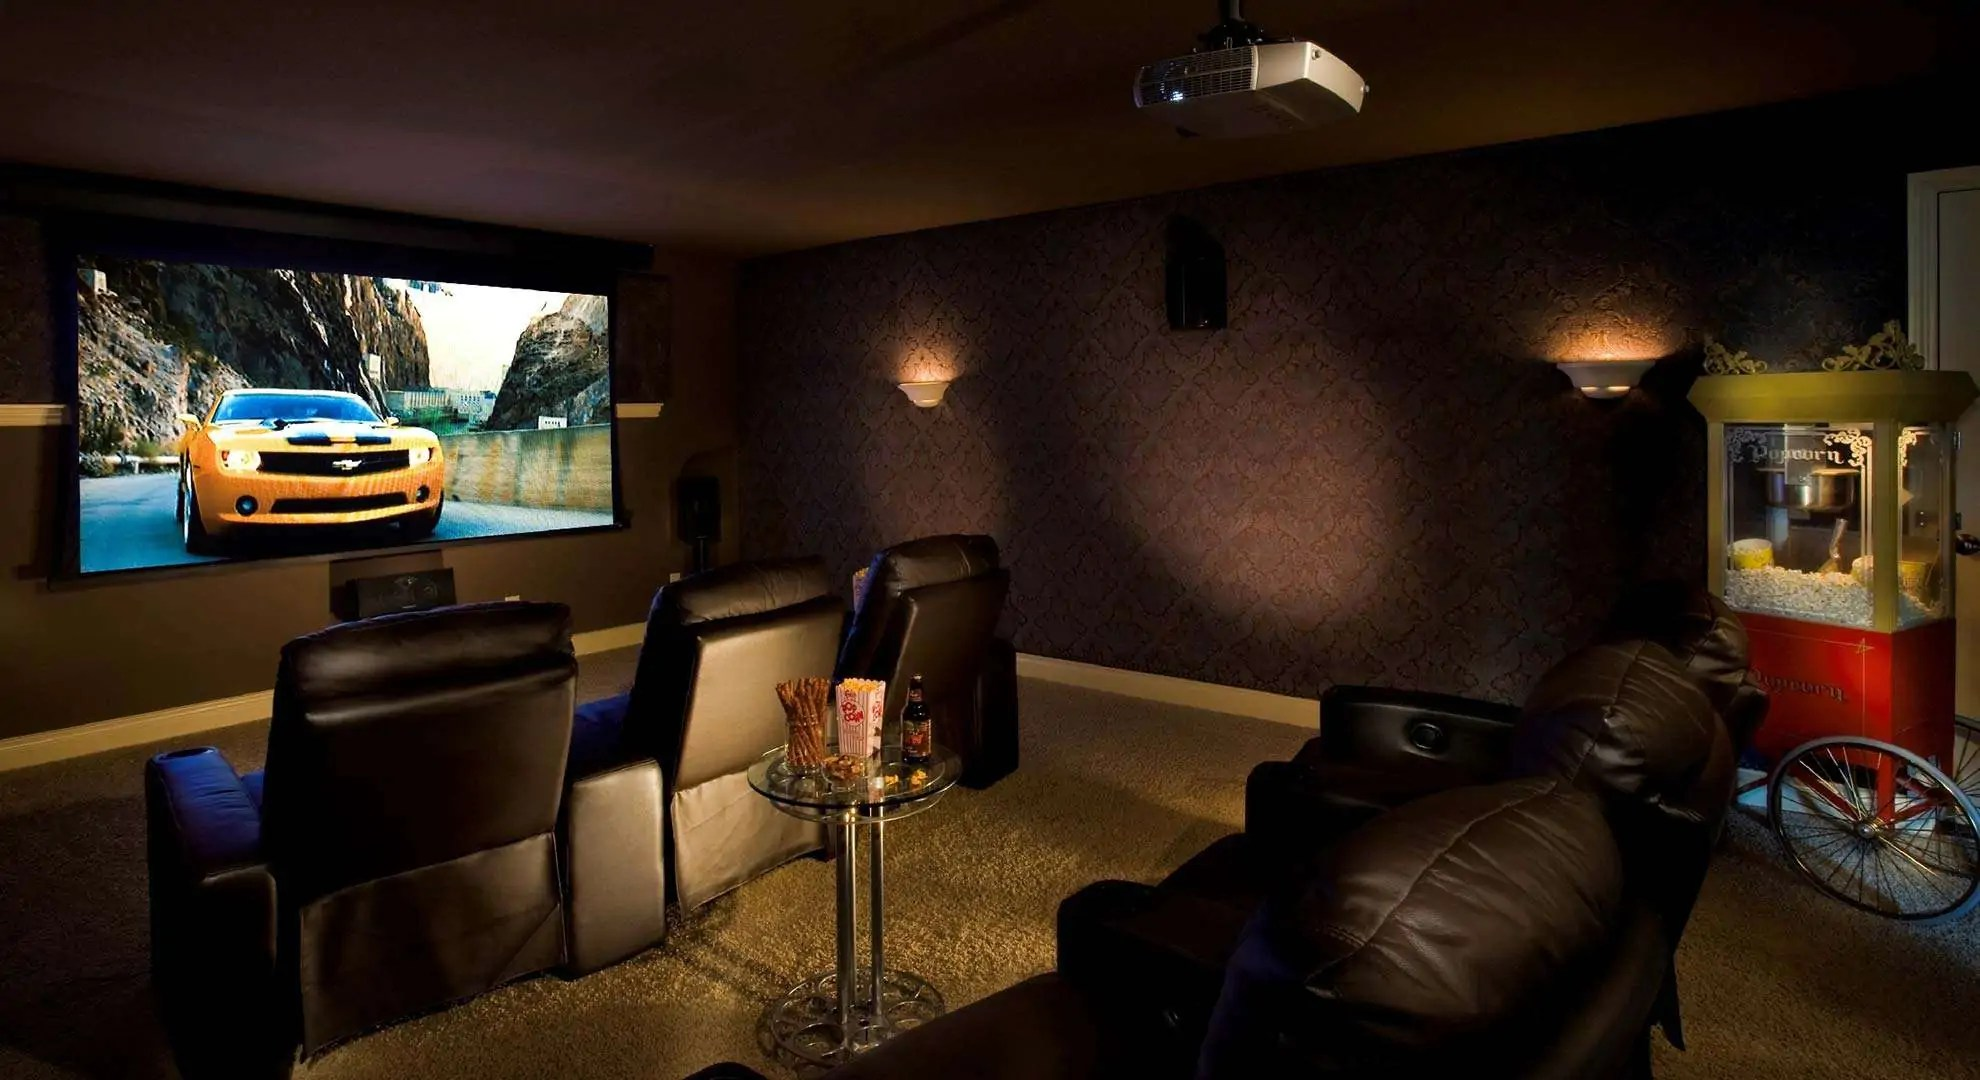 The 10 Best Home Theater Systems of 2019